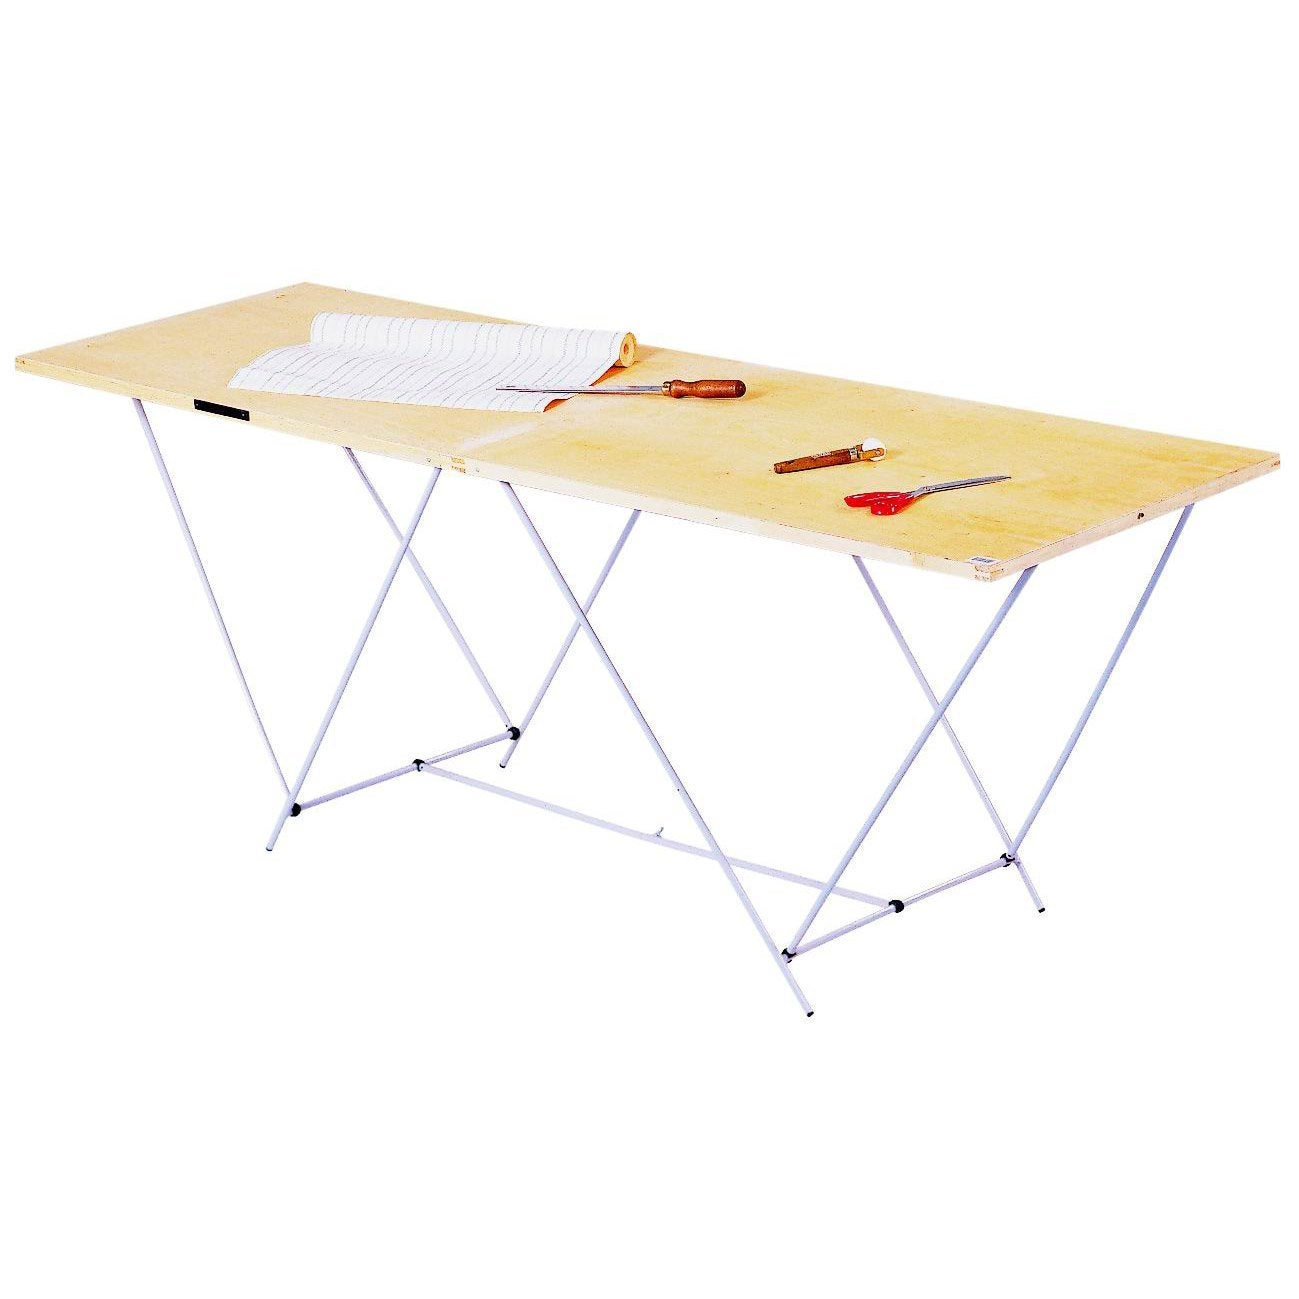 Table tapisser pliante en bois 60 cm x 2 m leroy merlin - Table pliante leroy merlin ...